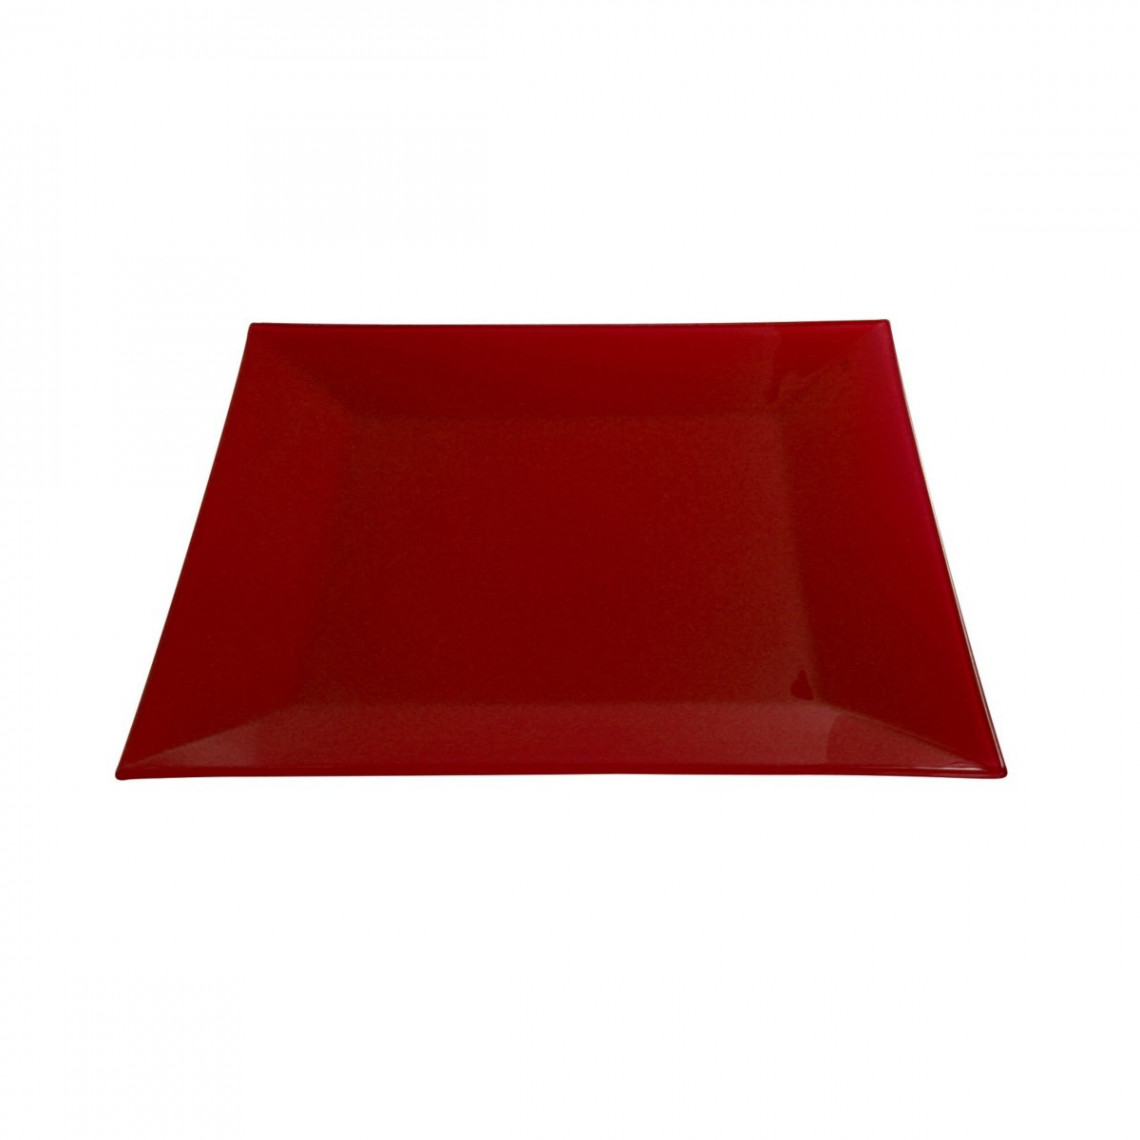 Assiette cocktail Calypso opaque rouge (31 x 31 cm)